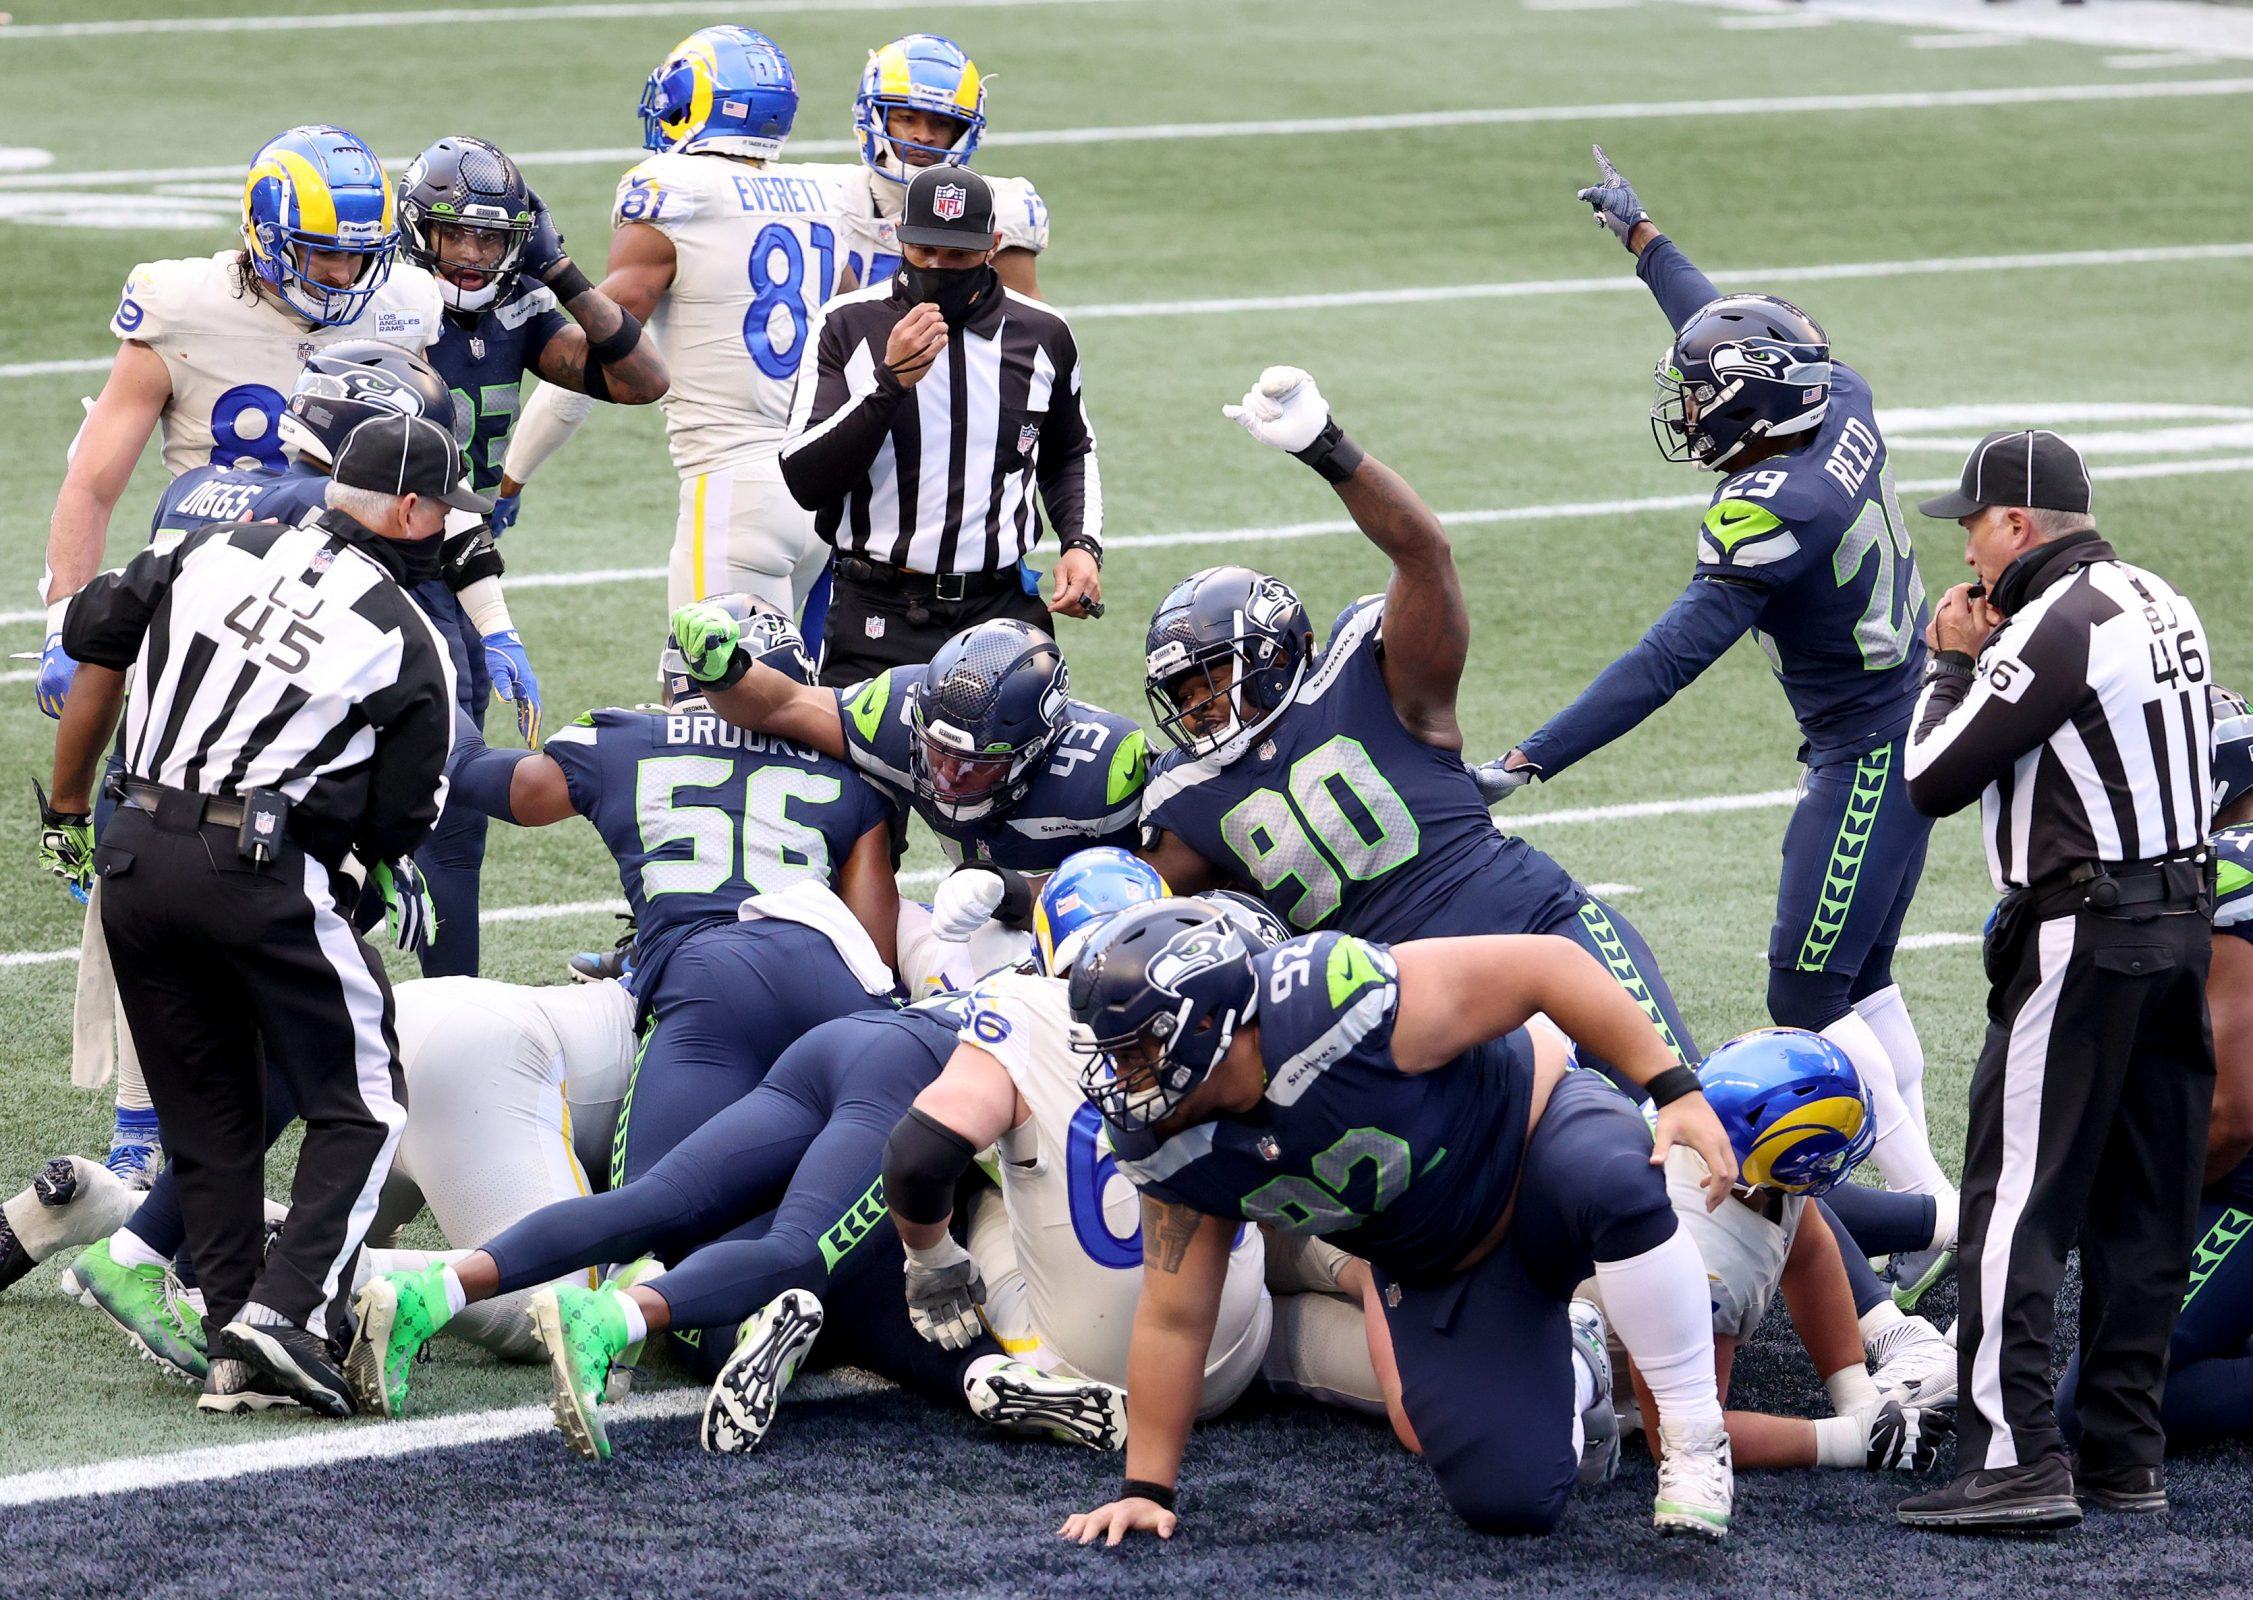 The Seattle Seahawks defense celebrates a stop on third down